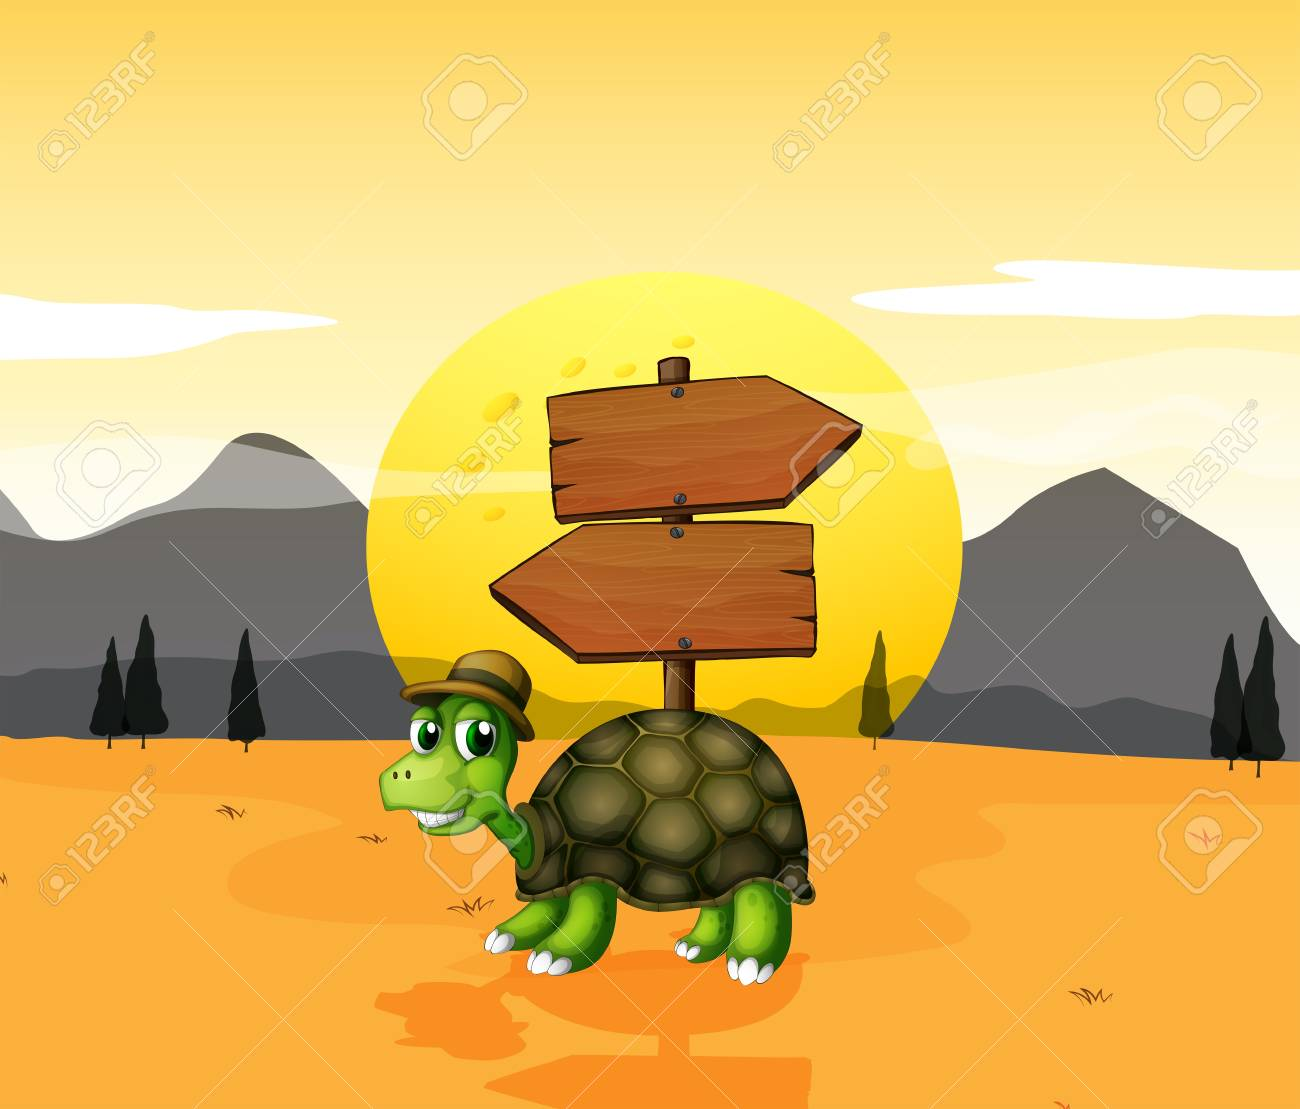 Illustration of a turtle in the desert near the arrowboards Stock Vector - 20518131